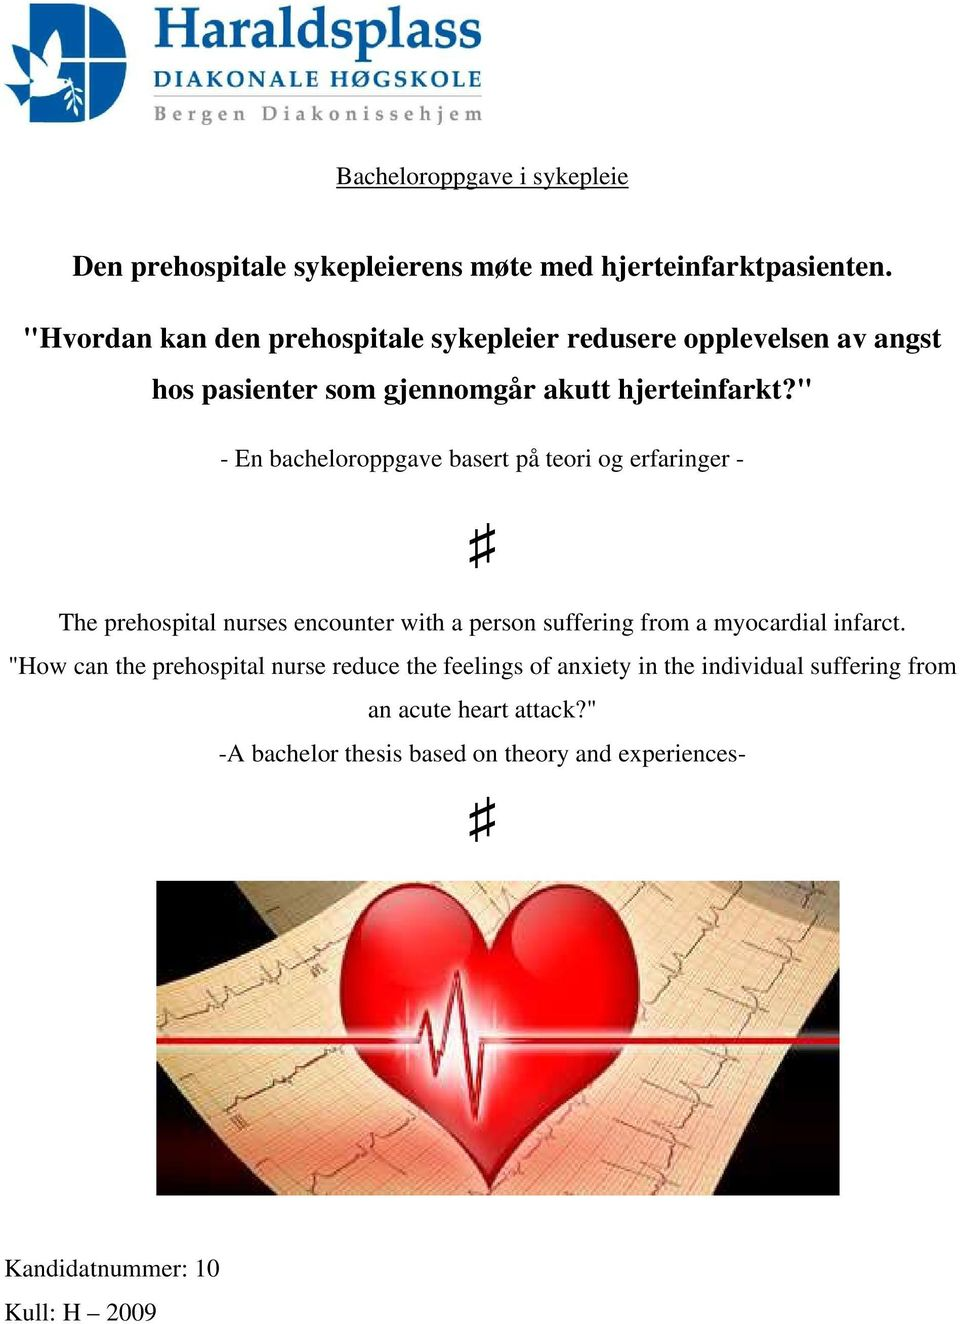 """ - En bacheloroppgave basert på teori og erfaringer - The prehospital nurses encounter with a person suffering from a myocardial infarct."